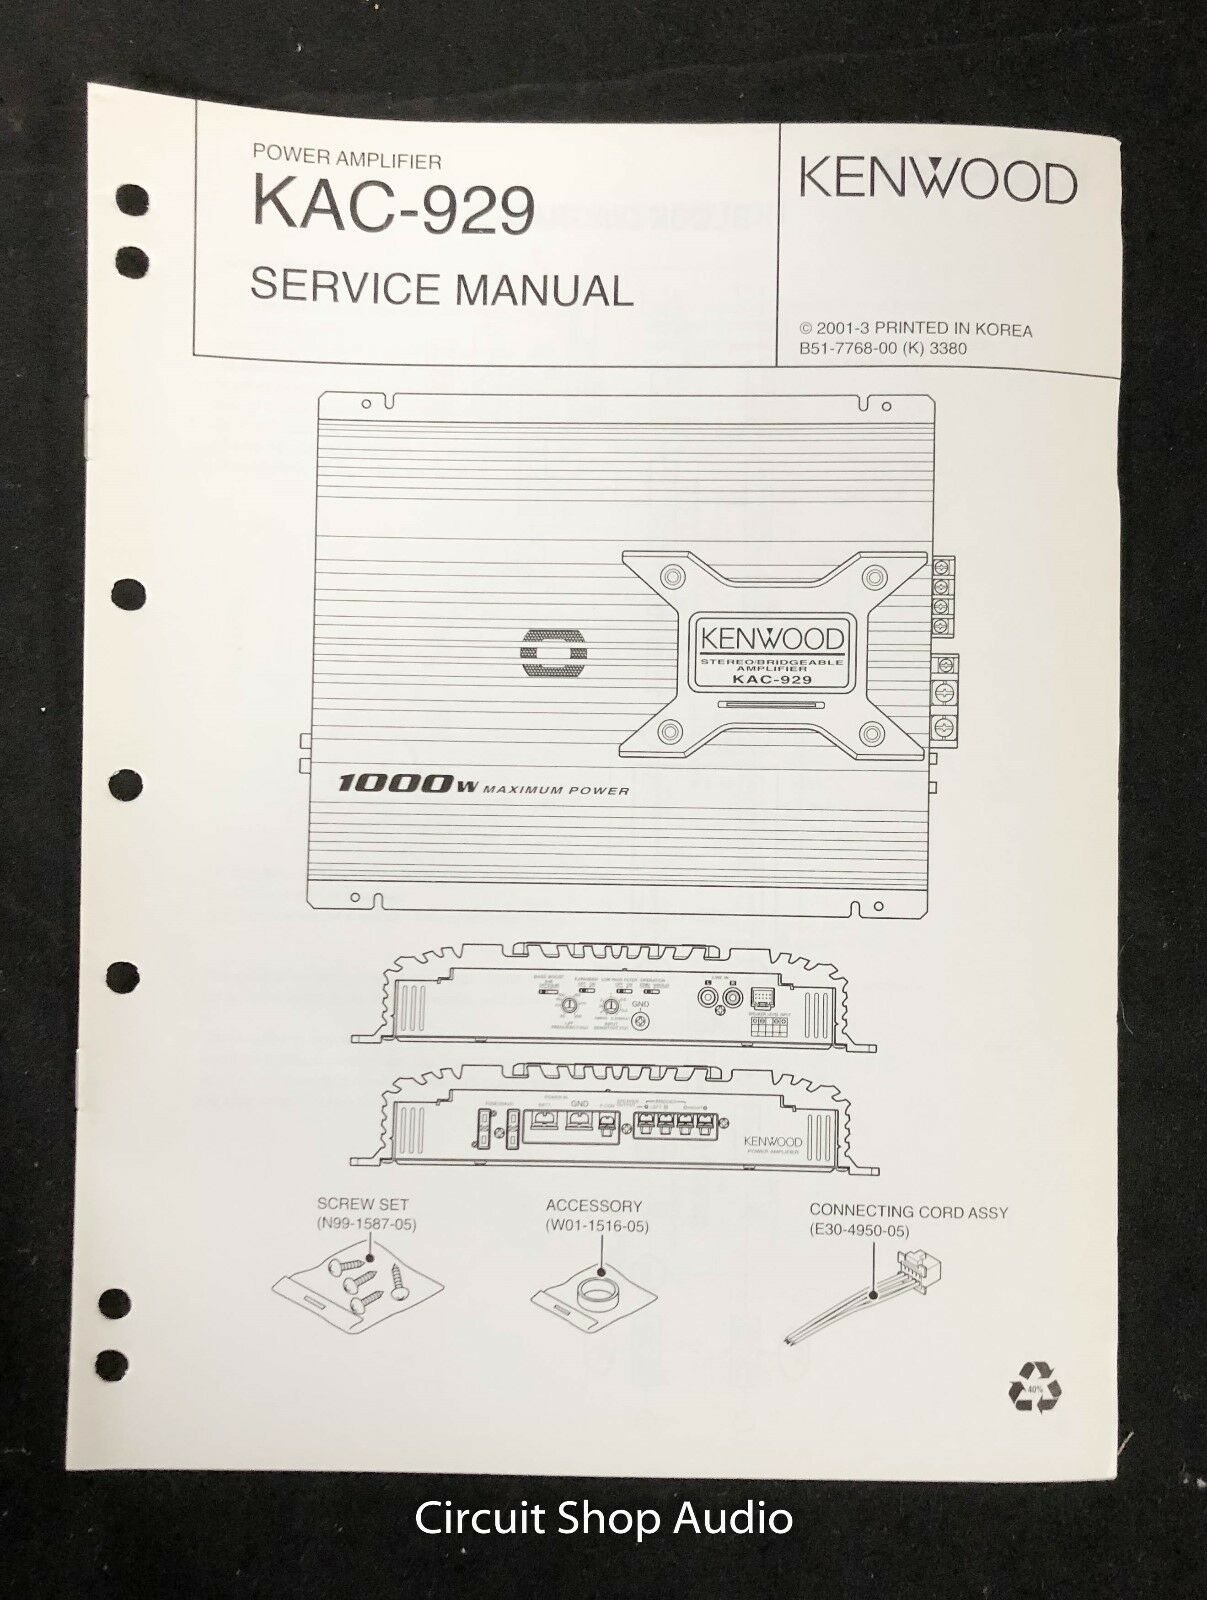 Original Kenwood KAC-929 Power Amplifier Service Manual 1 of 1Only 1  available ...